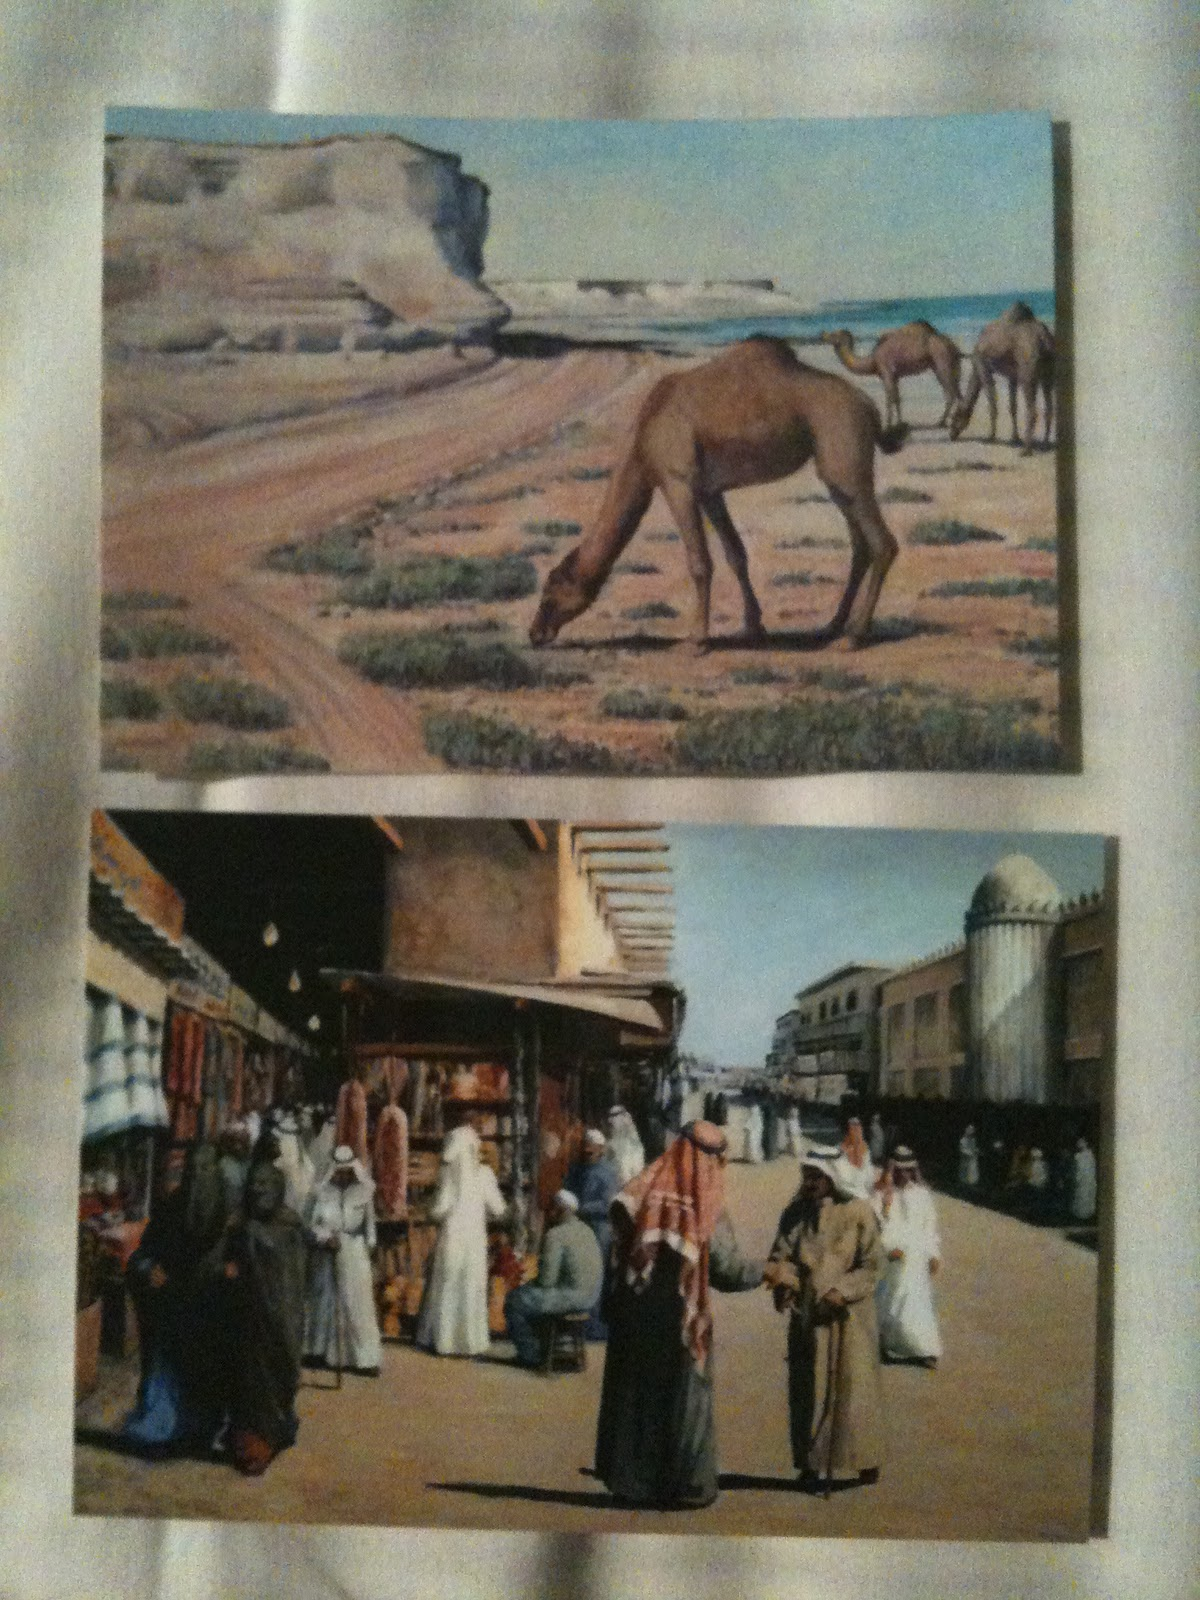 A Little Oryx in Qatar: Where to Buy Postcards in Qatar